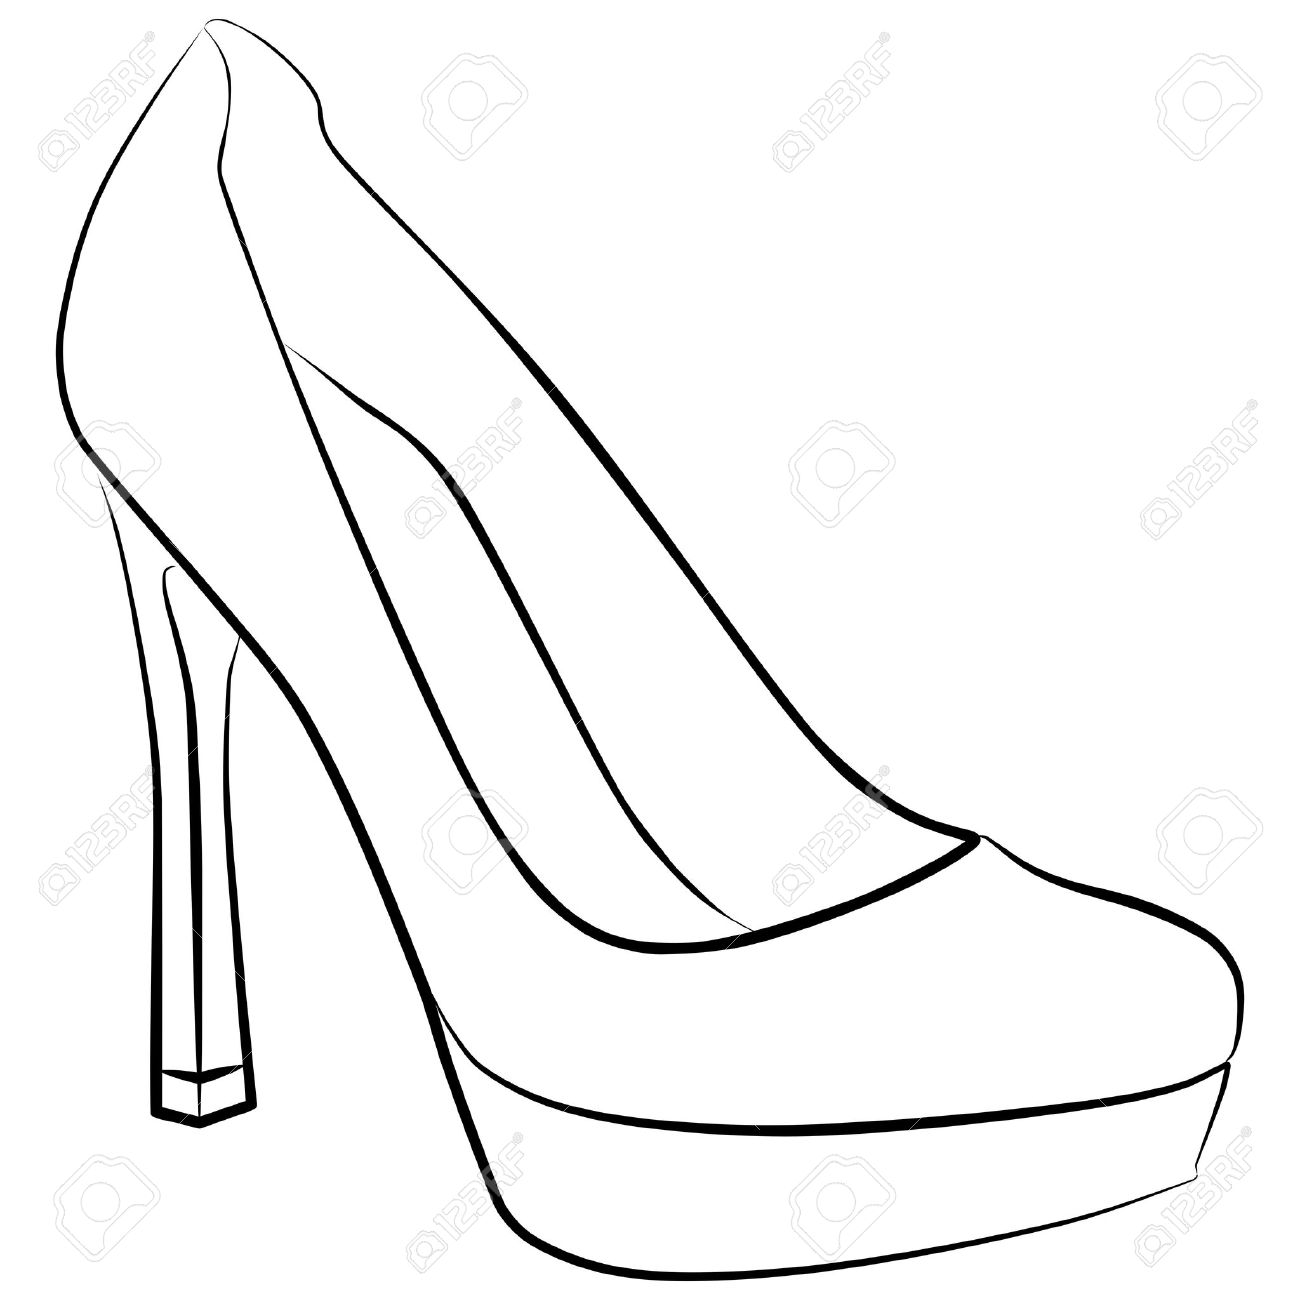 Drawn shoe high heel High outline Google Search Google